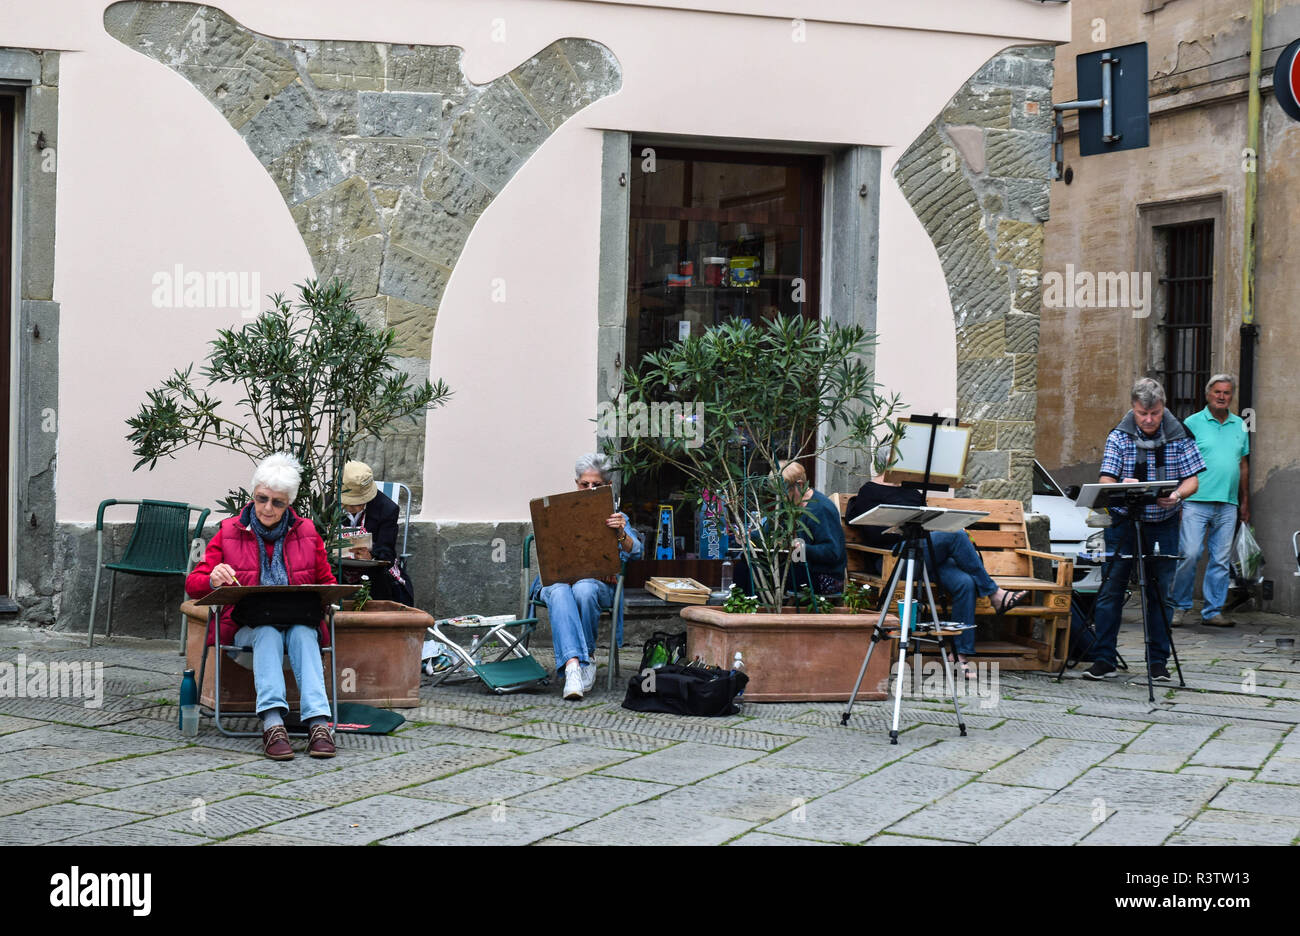 Participants of a British painting course in the central piazza on market day in Fivizzano, Tuscany, Italy.. - Stock Image